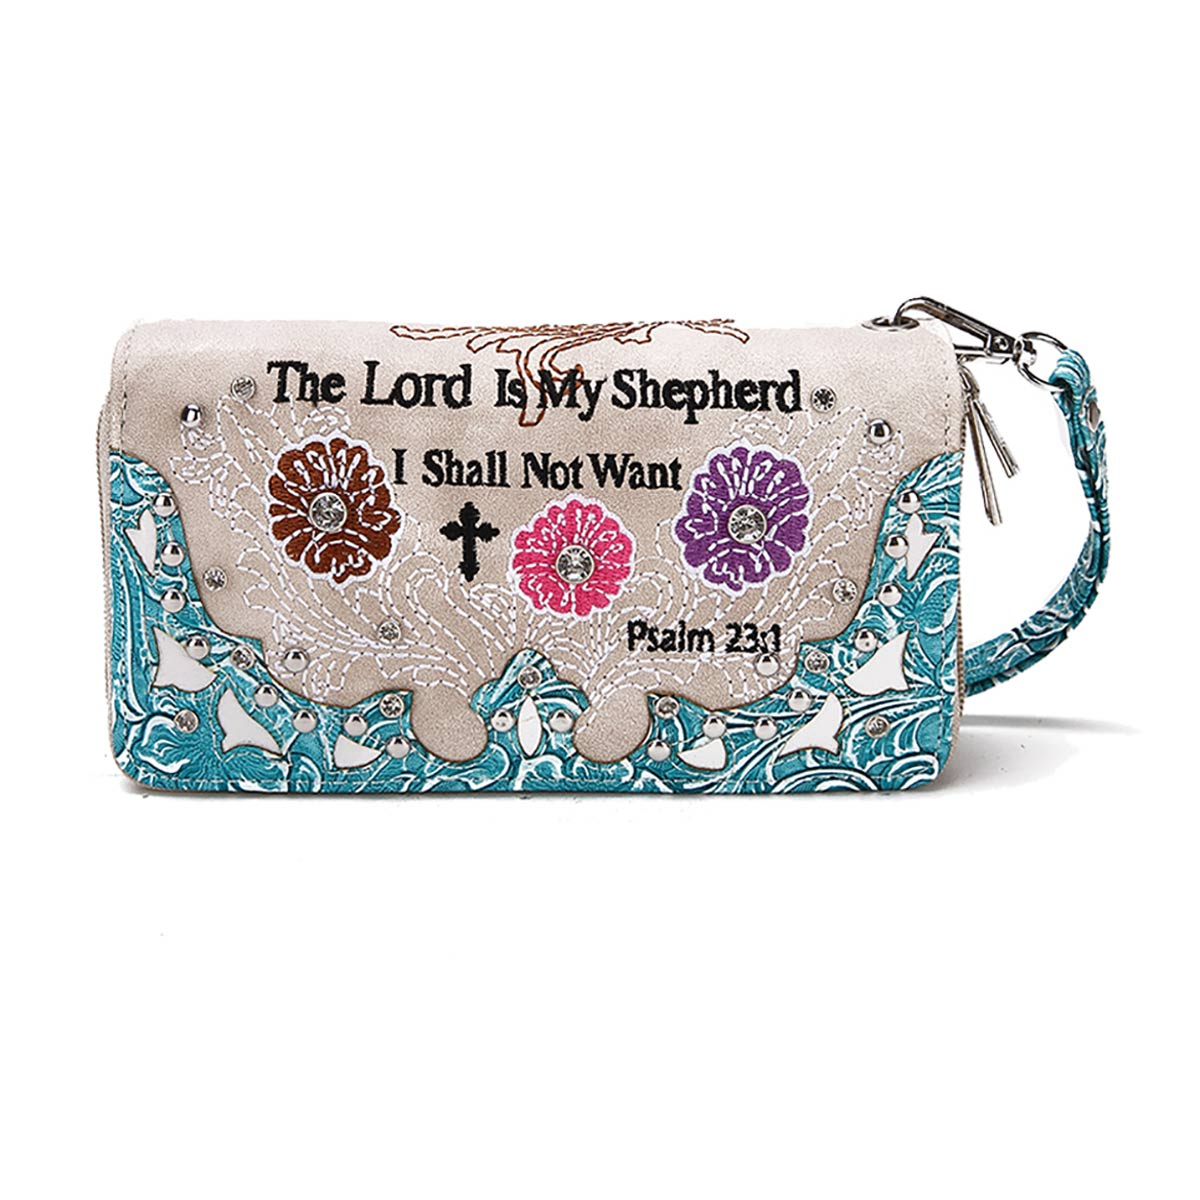 'Psalm 23:1' Biblical Word Wallet Turquoise